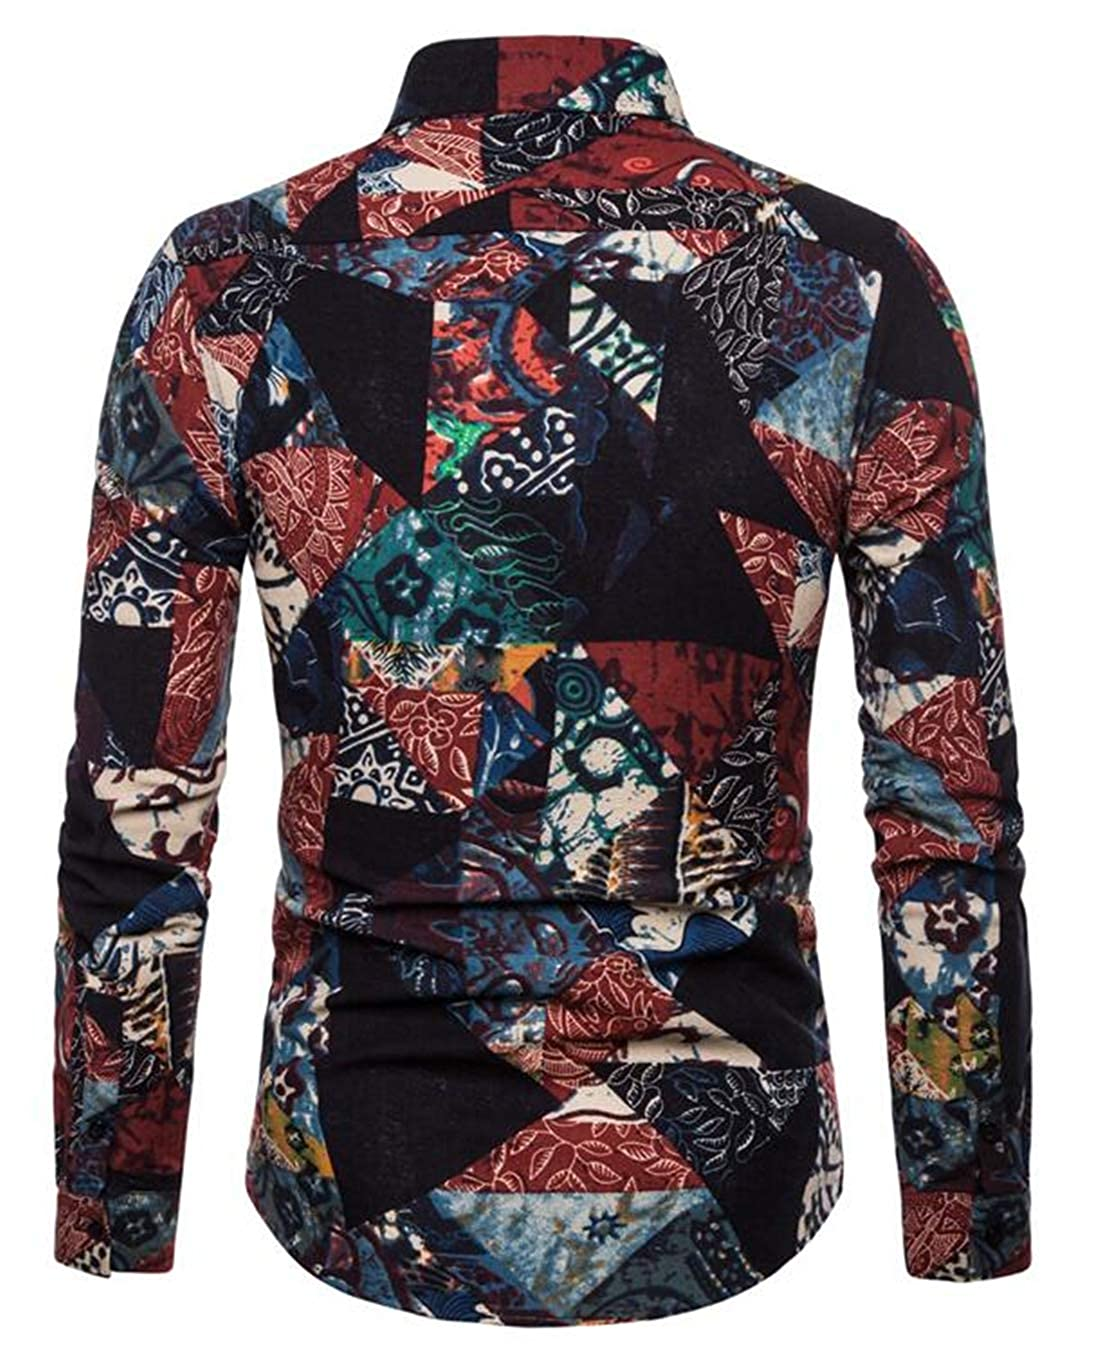 Wan-T Mens Casual Collared Contrast Color Long Sleeve Regular Fit Button Down Shirts